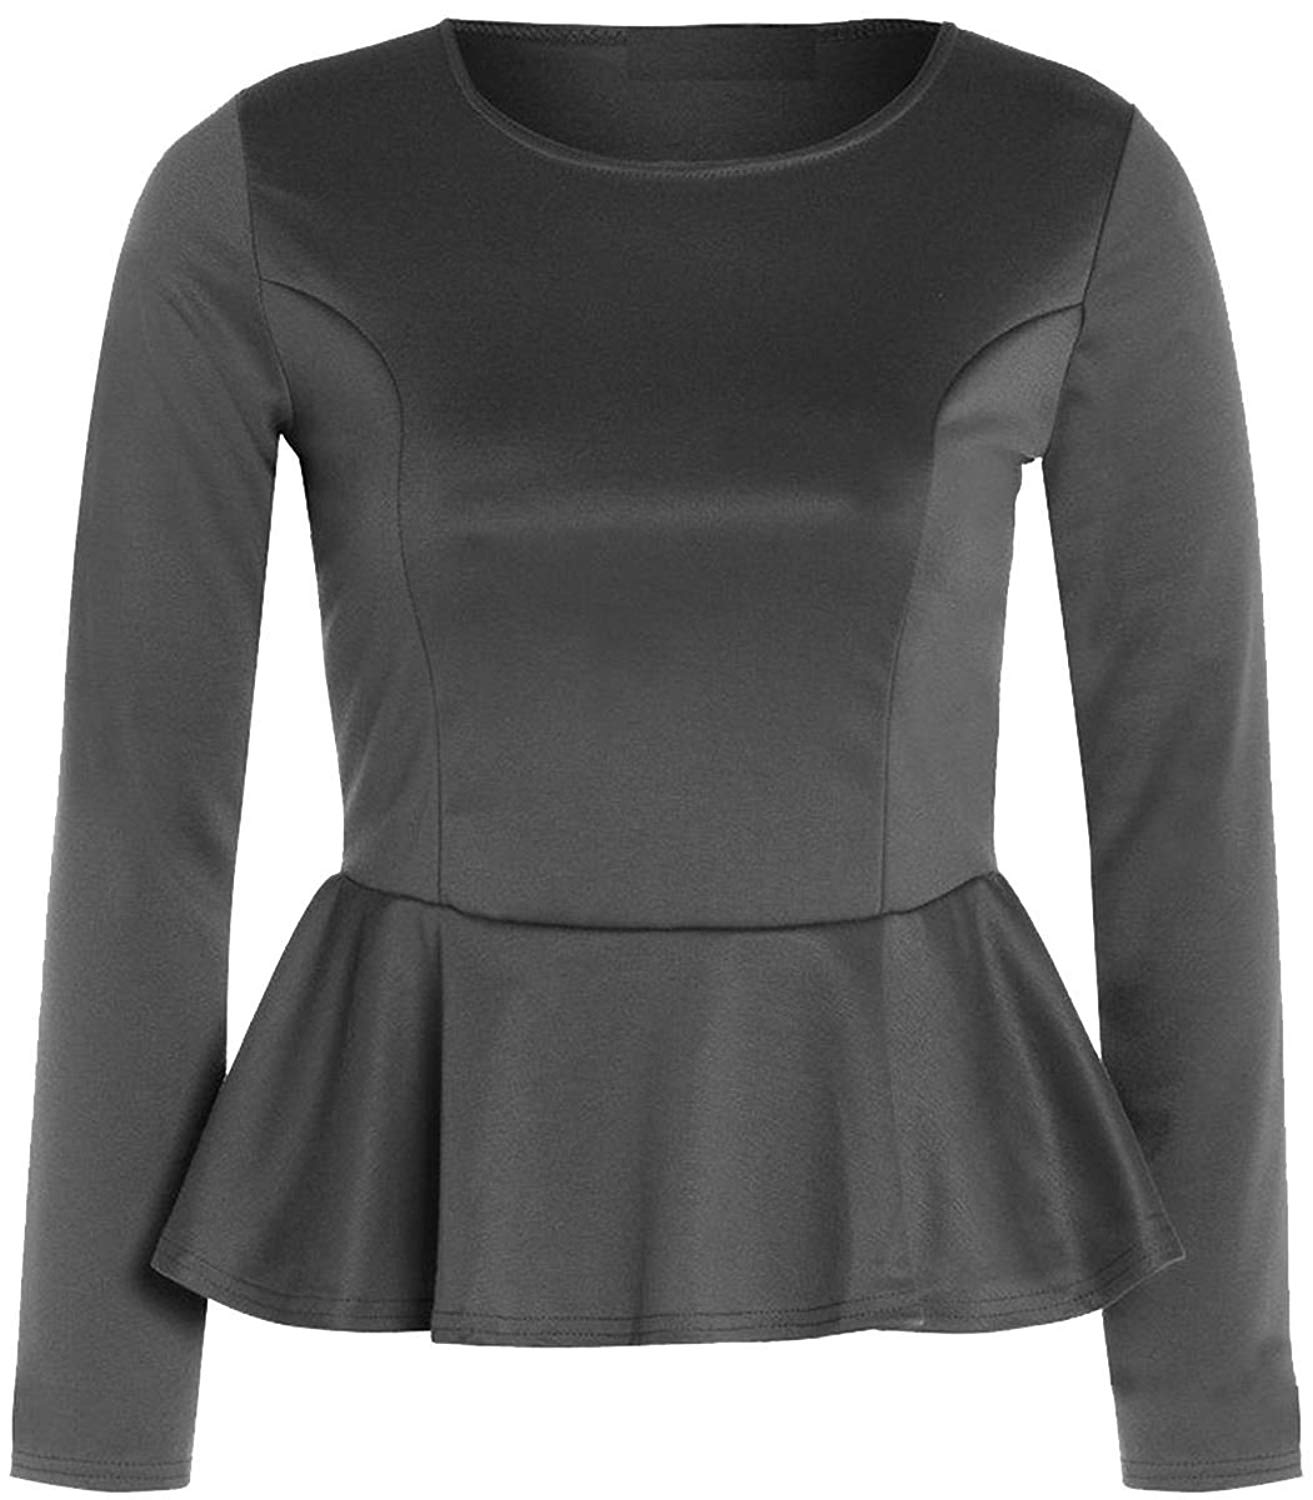 NEW LADIES PEPLUM SLEEVELESS SKATER TOP WOMENS FRILL PEPLUM FLARED TOP 8-26